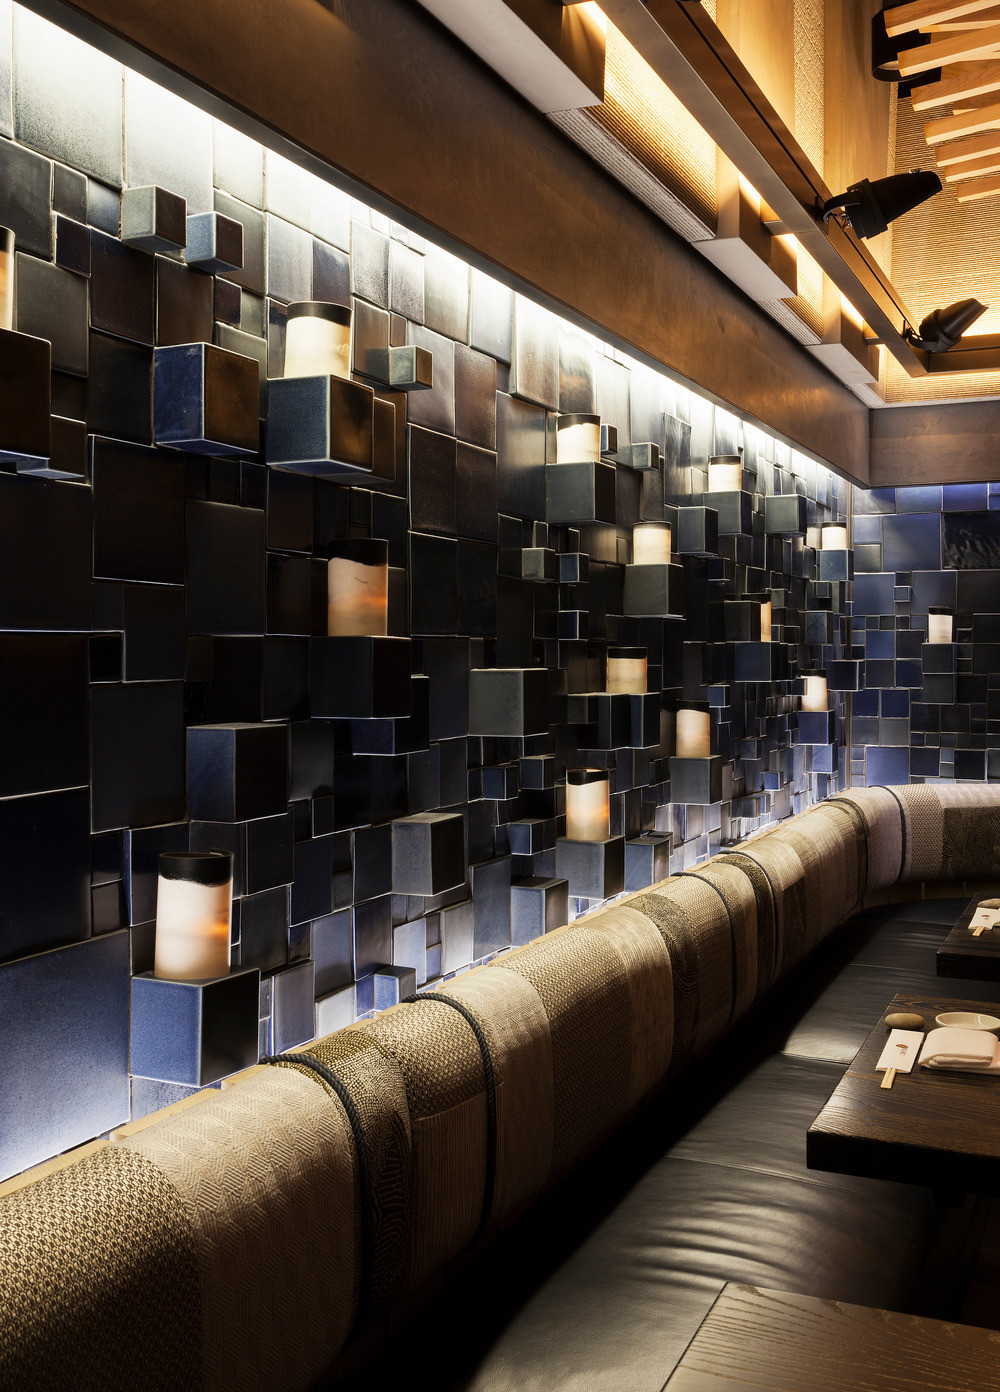 "Nobu Downtown   Project opening: 2017 | Completed at Rockwell Group | Role: Interior Designer               96                Normal     0                     false     false     false         EN-US     X-NONE     X-NONE                                                                                                                                                                                                                                                                                                                                                                                                                                                                                                                                                                                                                                                                                                                                                                                                                                                                                                                                                                                                                                                                                                                                                                                                                                                                                                                                                                                                                                                                                                                                                                                                                                                                                                                                 /* Style Definitions */ table.MsoNormalTable 	{mso-style-name:""Table Normal""; 	mso-tstyle-rowband-size:0; 	mso-tstyle-colband-size:0; 	mso-style-noshow:yes; 	mso-style-priority:99; 	mso-style-parent:""""; 	mso-padding-alt:0in 5.4pt 0in 5.4pt; 	mso-para-margin:0in; 	mso-para-margin-bottom:.0001pt; 	mso-pagination:widow-orphan; 	font-size:12.0pt; 	font-family:Calibri; 	mso-ascii-font-family:Calibri; 	mso-ascii-theme-font:minor-latin; 	mso-hansi-font-family:Calibri; 	mso-hansi-theme-font:minor-latin;}     Laura played a leading role in the design of this 12,500-square-foot restaurant. The Rockwell Group design team was tasked with rethinking the 20 year old iconic New York flagship to bring it's brand and spirit into the interior landmarked beaux arts building where, on the lobby floor, no permanent construction could be done. Laura took as many opportunities as possible to specify sustainable finishes. FSC certified timber was used everywhere possible, walls in the downstairs space were coated with shikkui plaster, an air purifying Japanese finish made from finely ground upcycled eggshells. Chairs from the old restaurant were reused and reupholstered in bright colors nodding to Nobu's Peruvian fusion culinary heritage.    Award:  Interior Design NYCxDESIGN: BEST RESTAURANT 2017   Photo credit to Stephanie Hildebrand and Eric Laingel Photography."